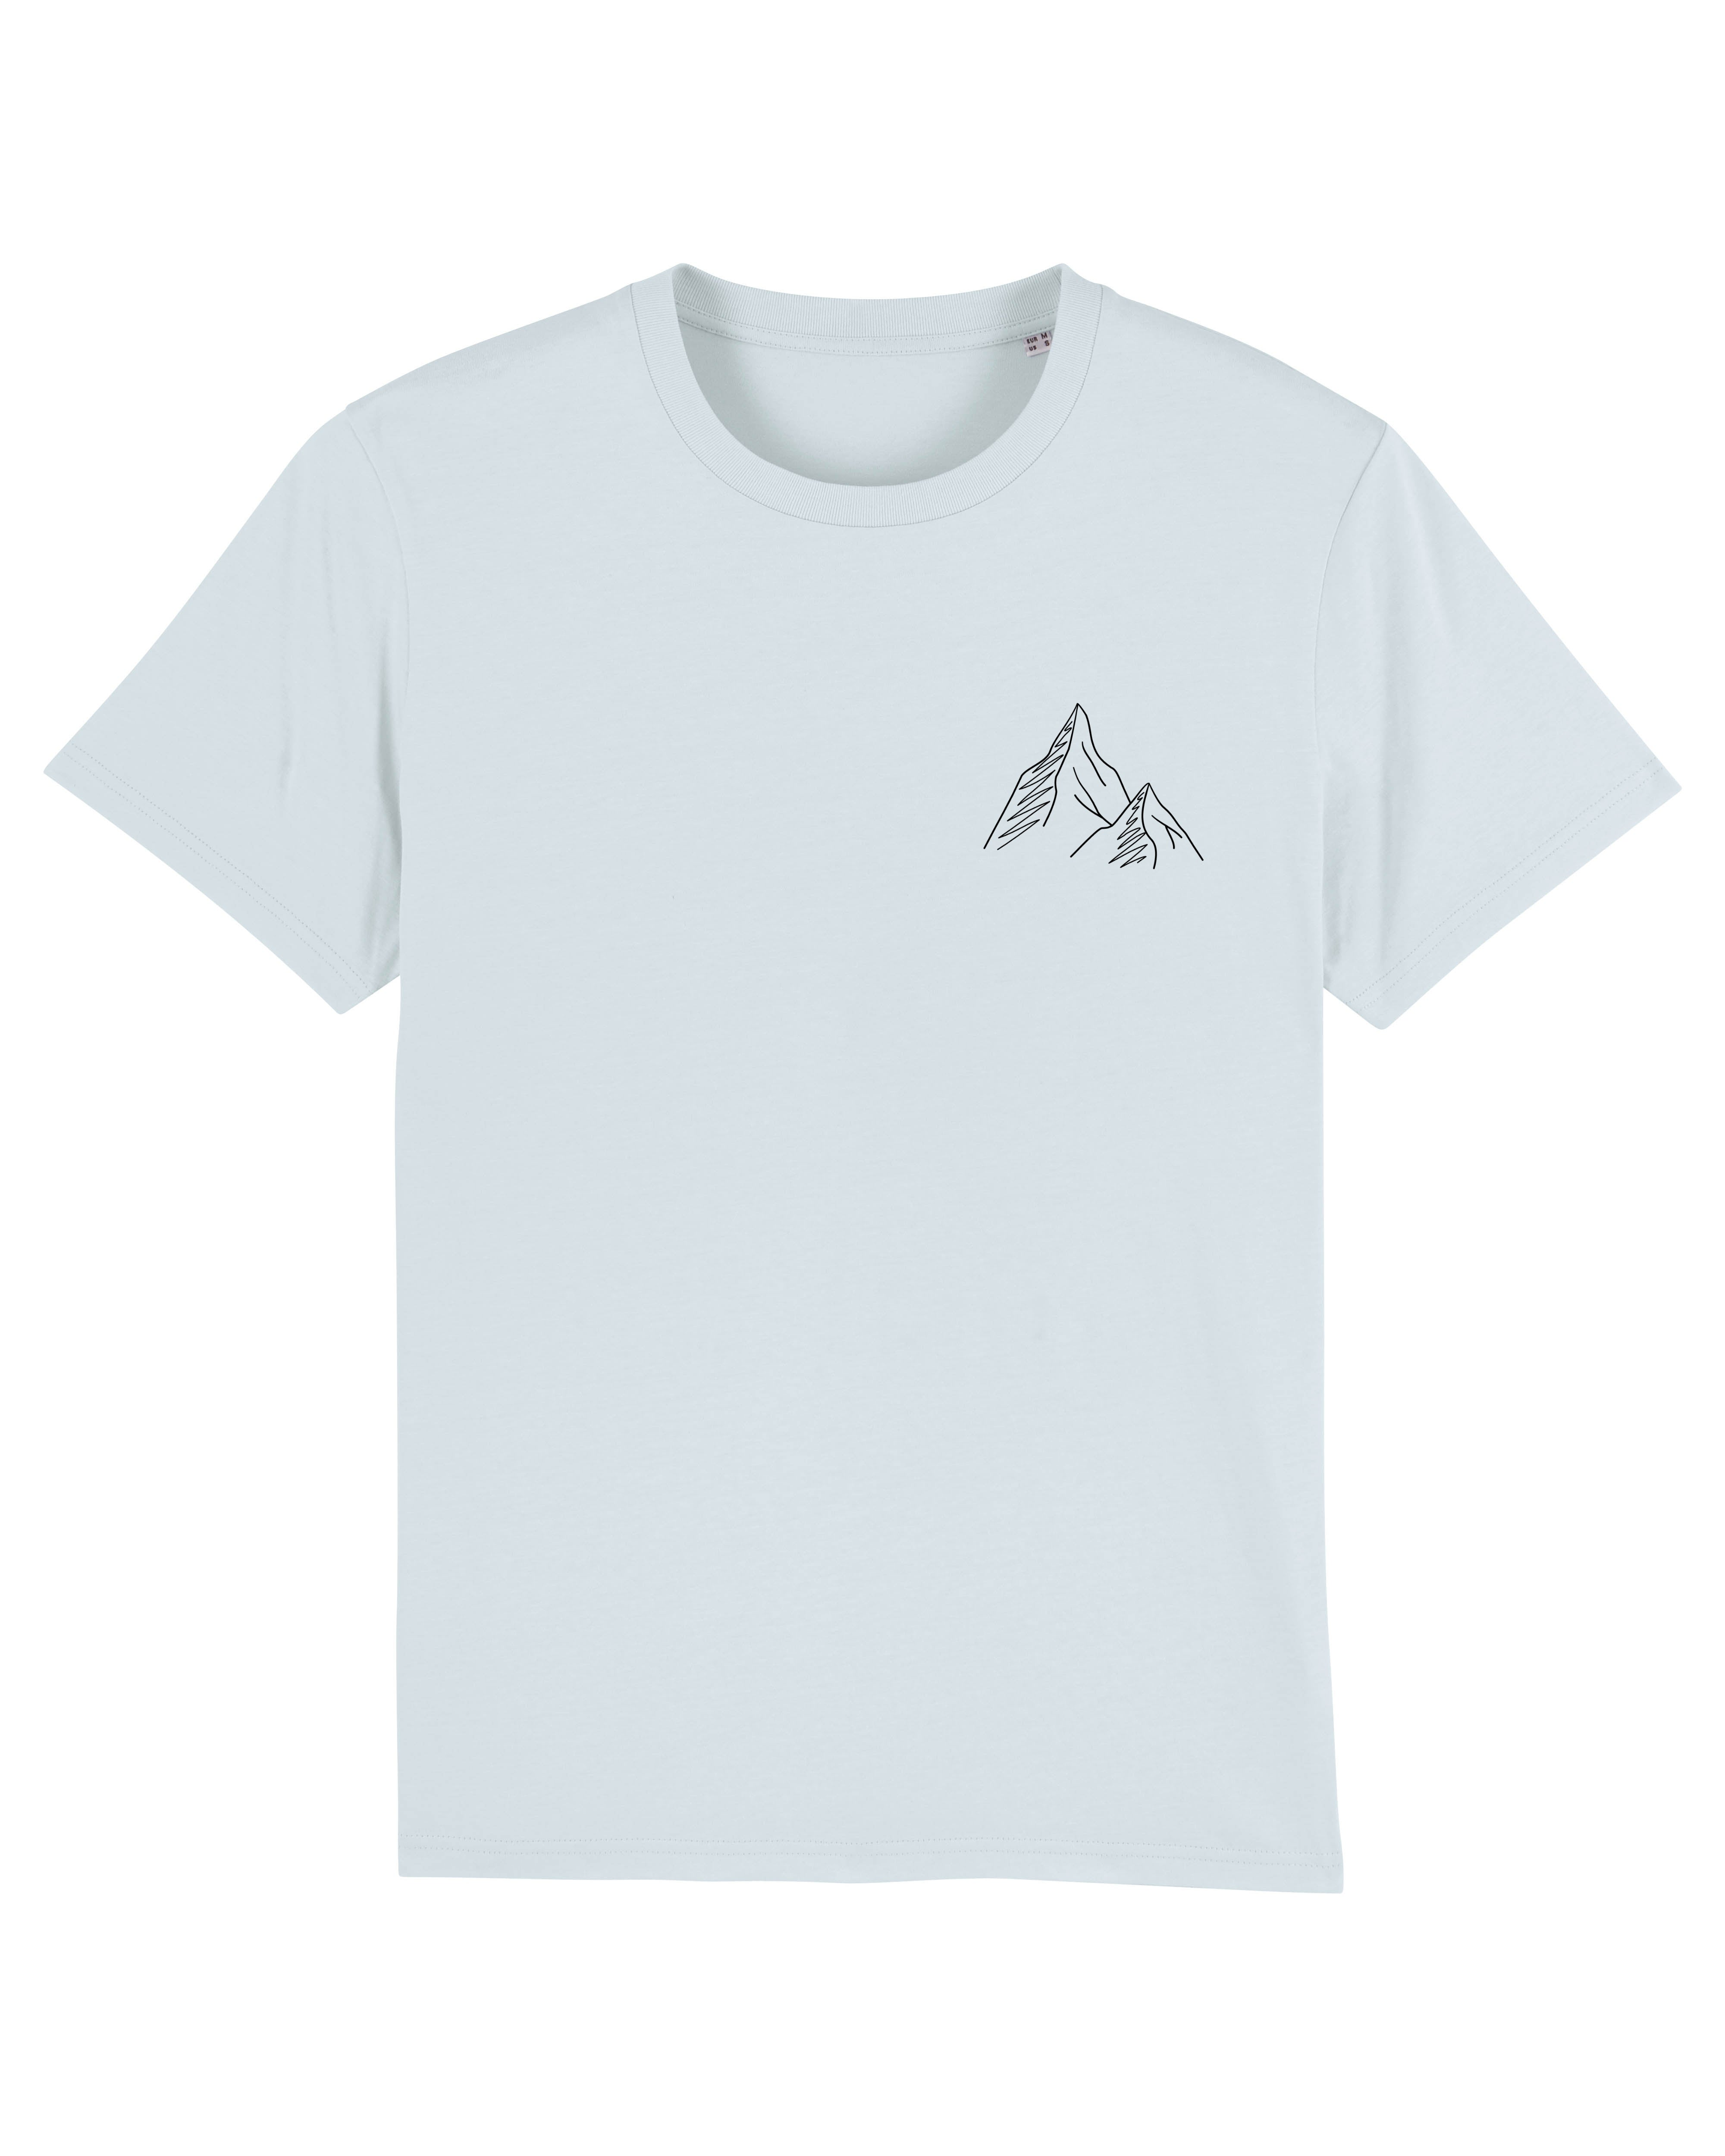 T-shirt belledonne (6 couleurs)